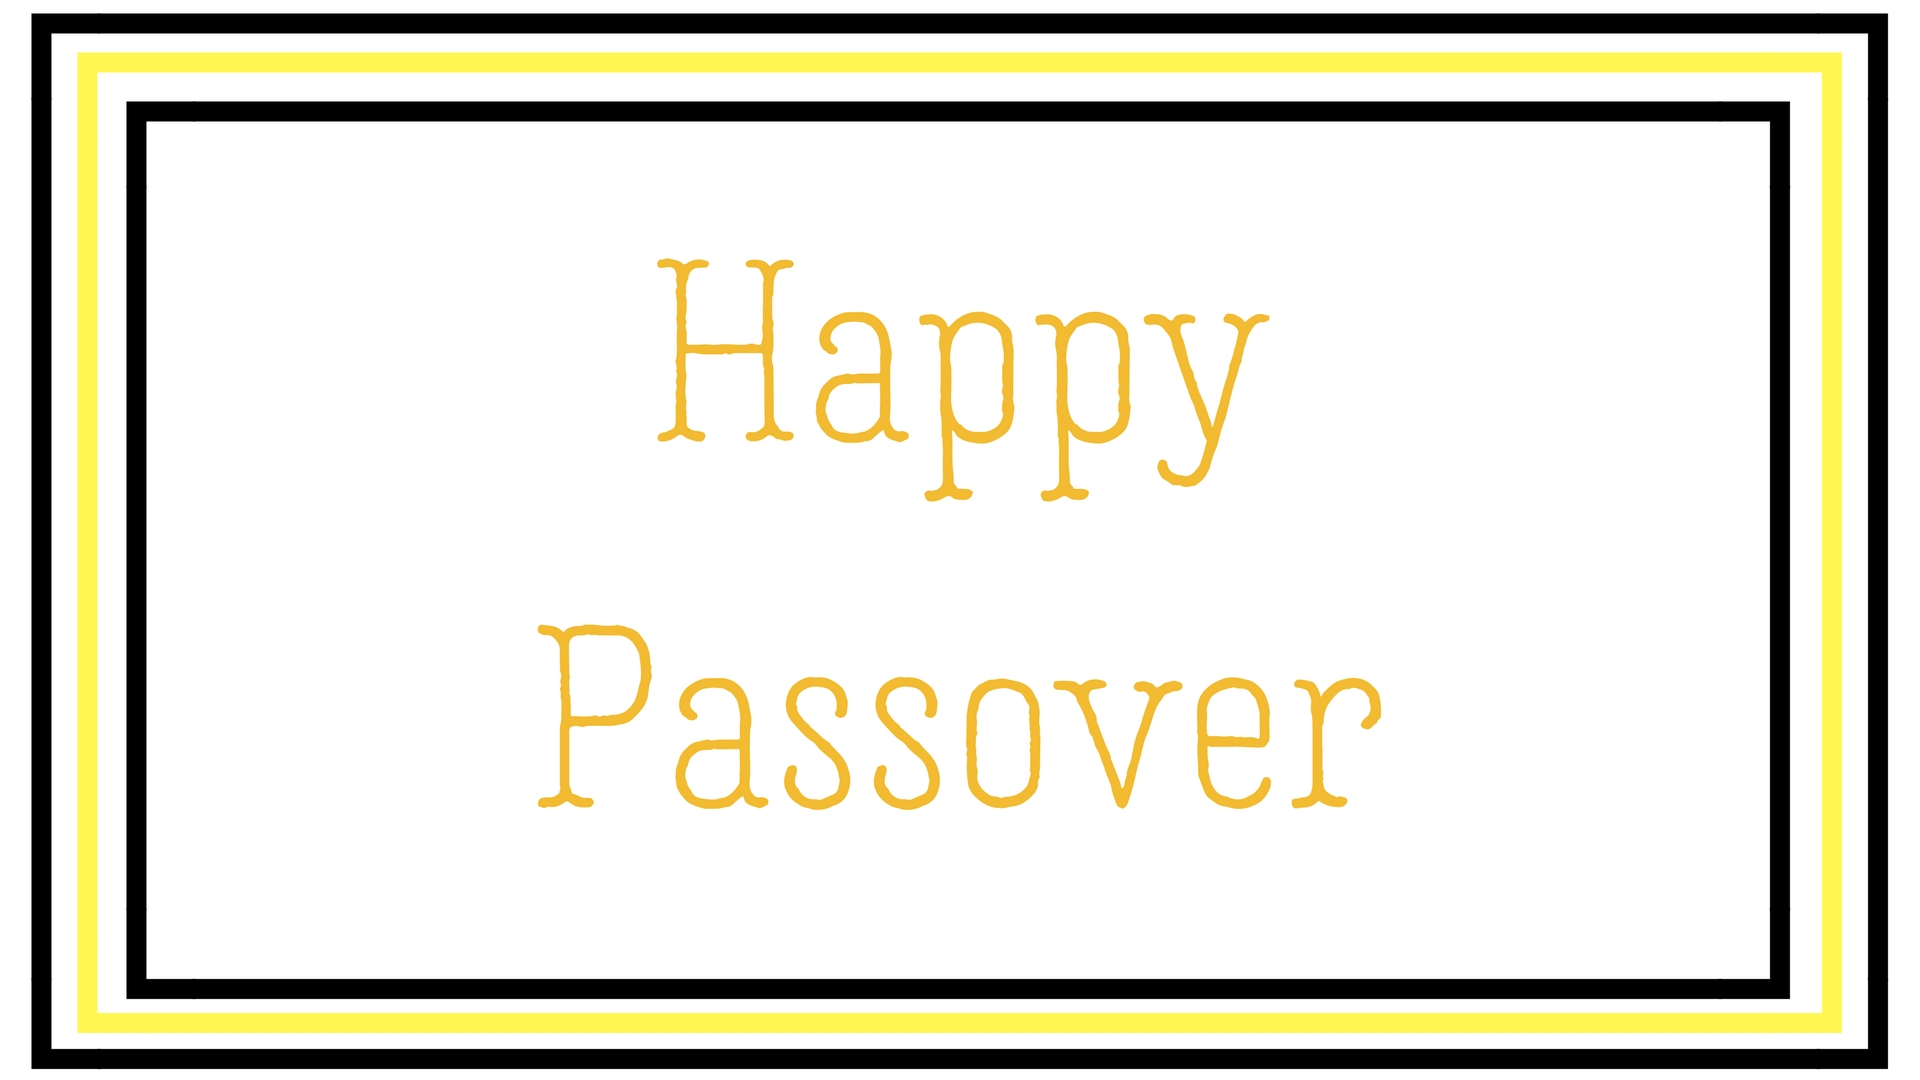 Happy Passover Rectangle Frame Greeting Card Postcard 1